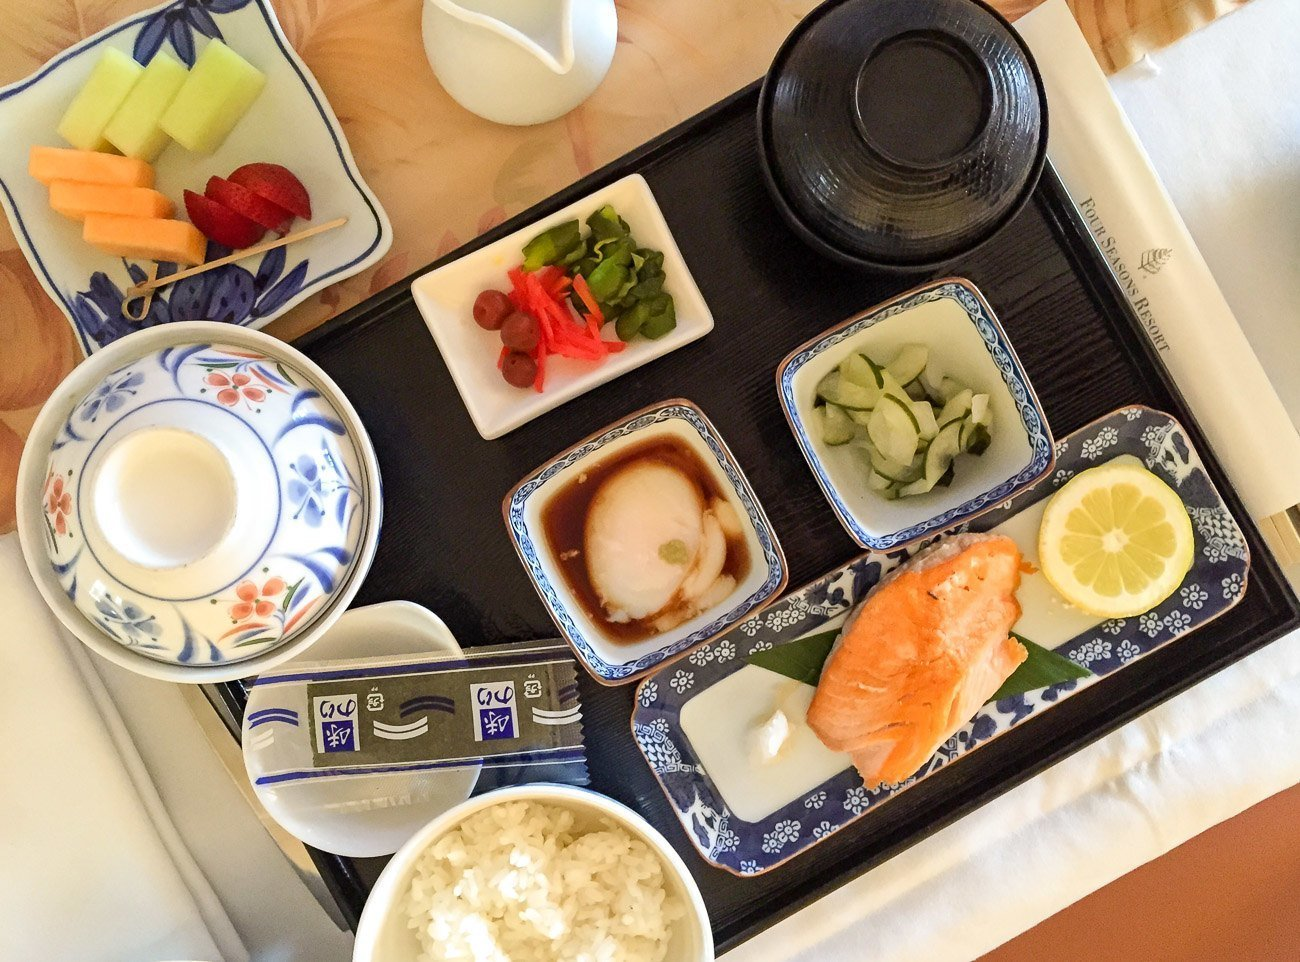 The Japanese breakfast from in-room dining at Four Seasons Resort Maui at Wailea